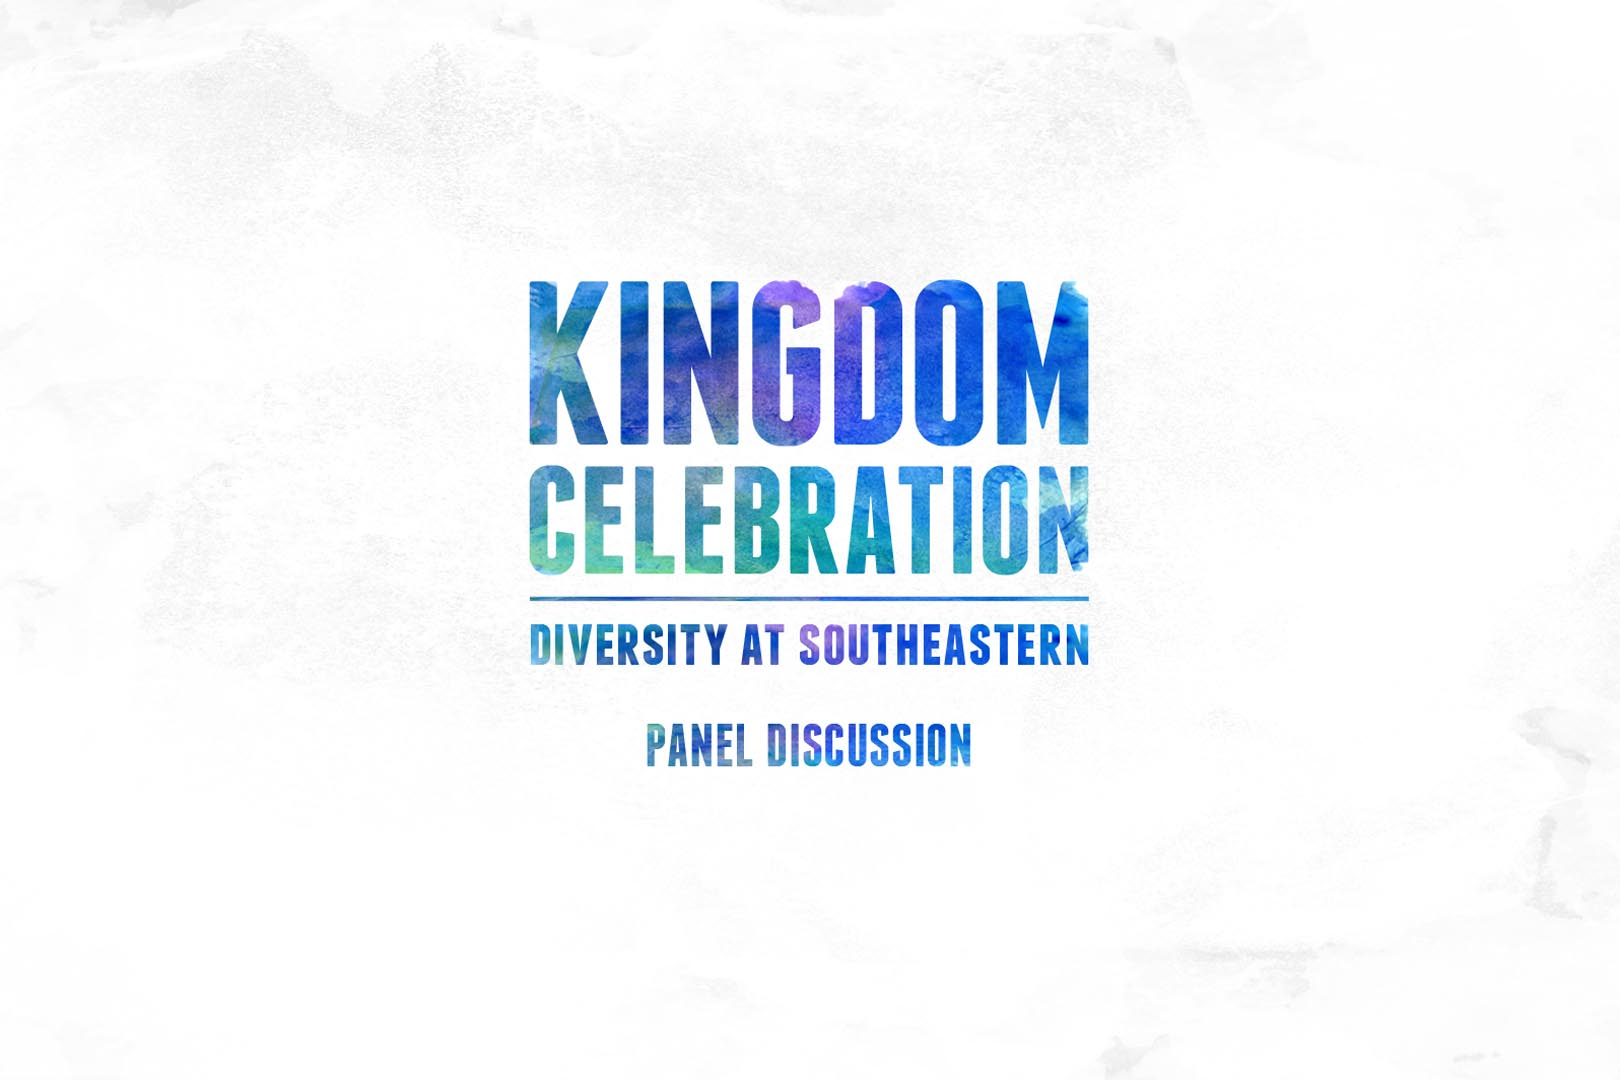 Kingdom Celebration – Panel Discussion on Diversity